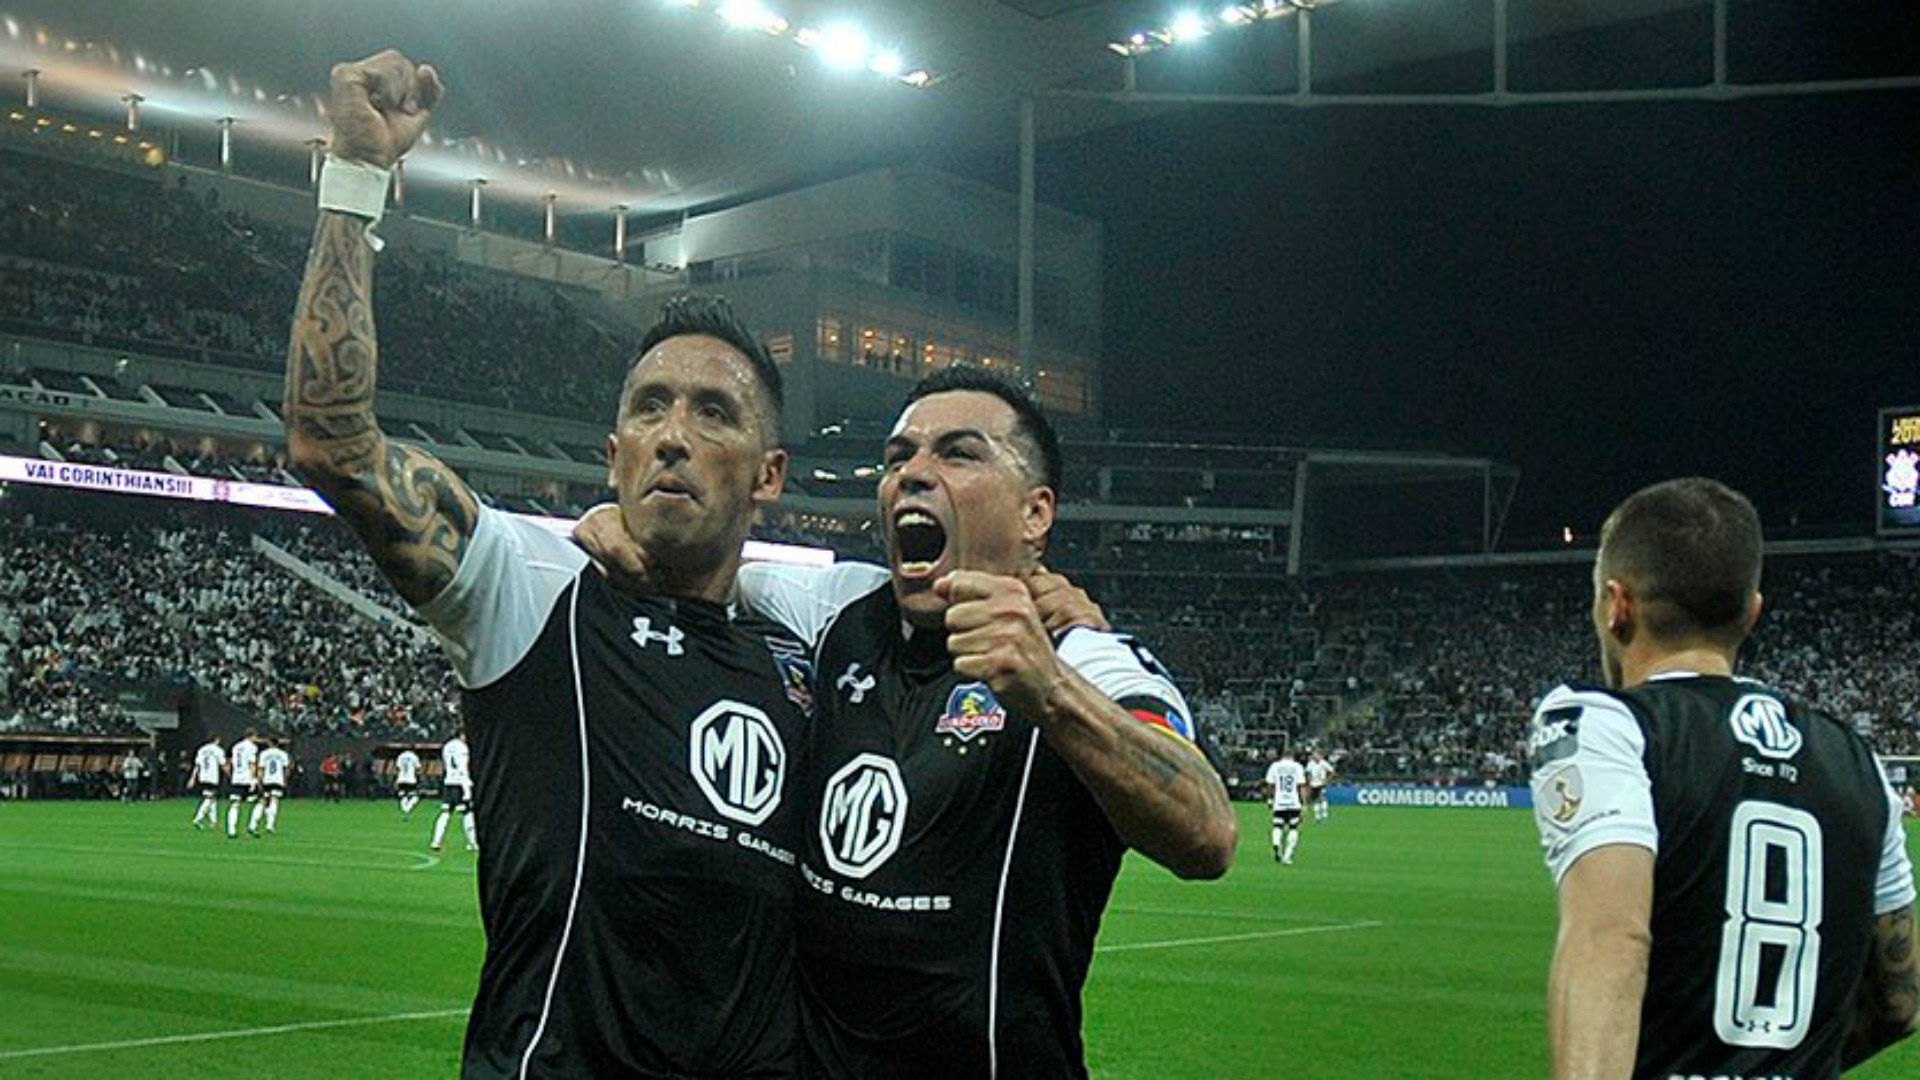 Lucas Barrios - Esteban Paredes